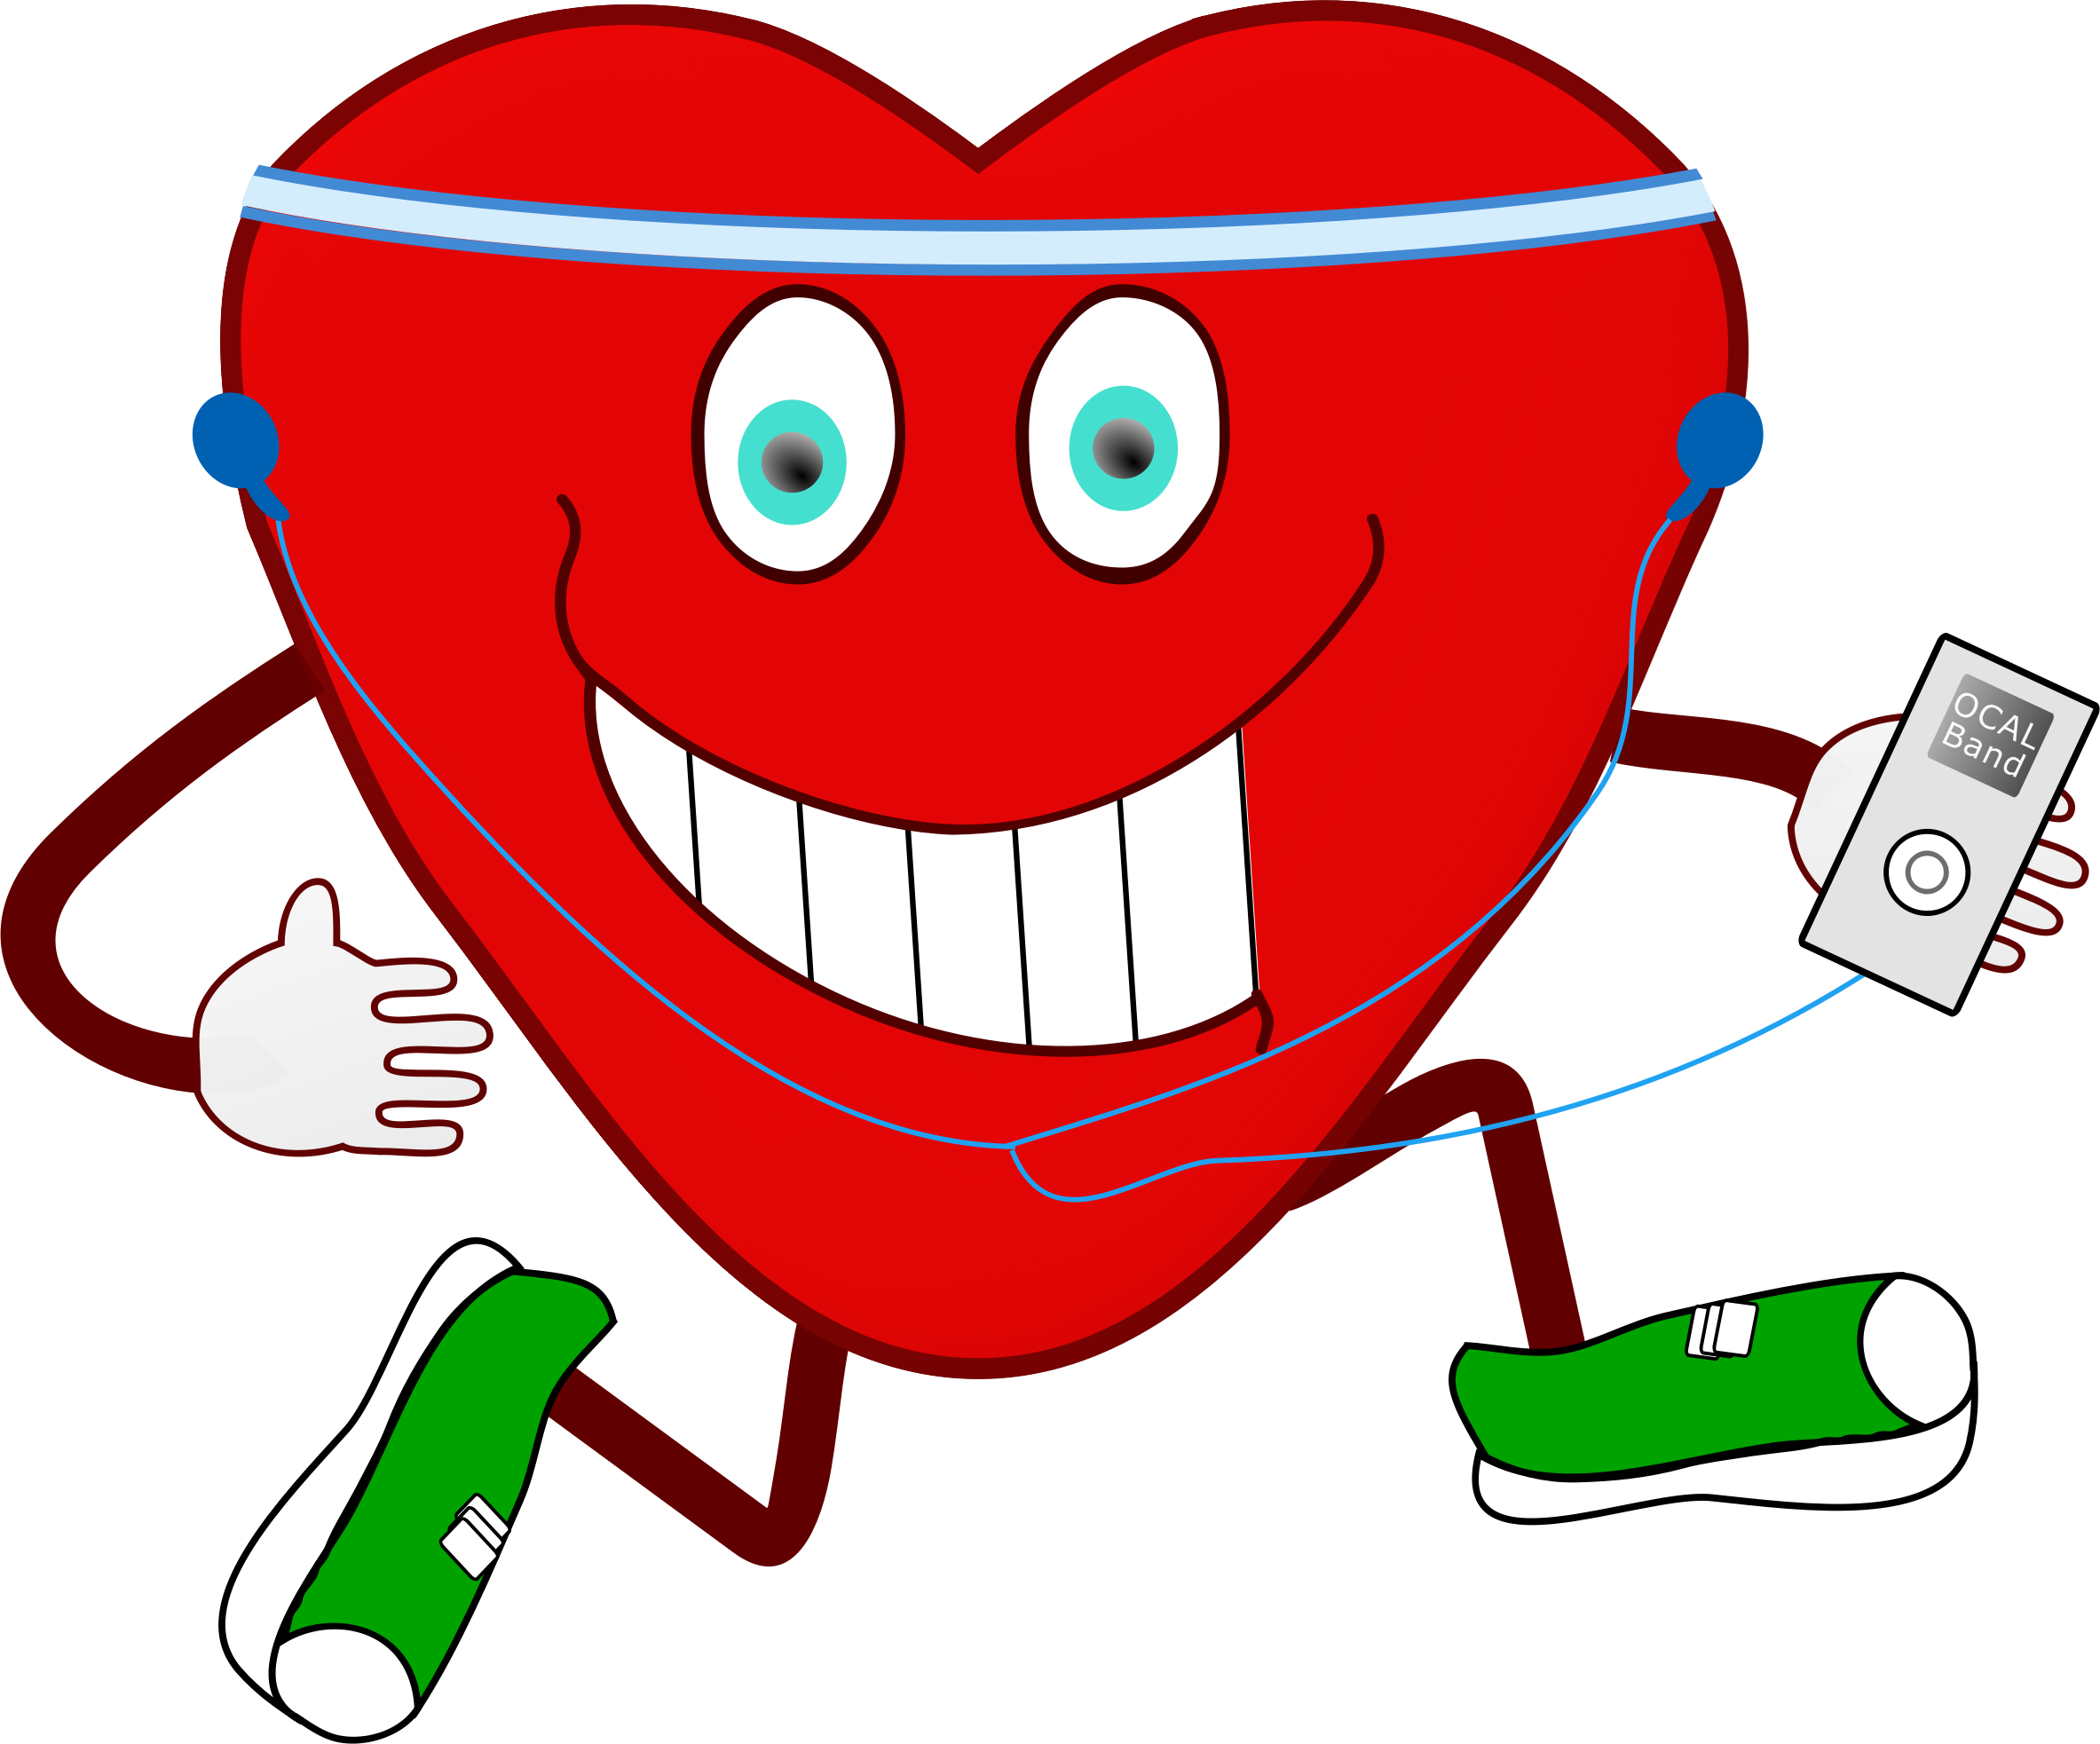 Heart exercising clipart royalty free stock Clipart - Jogging Heart royalty free stock